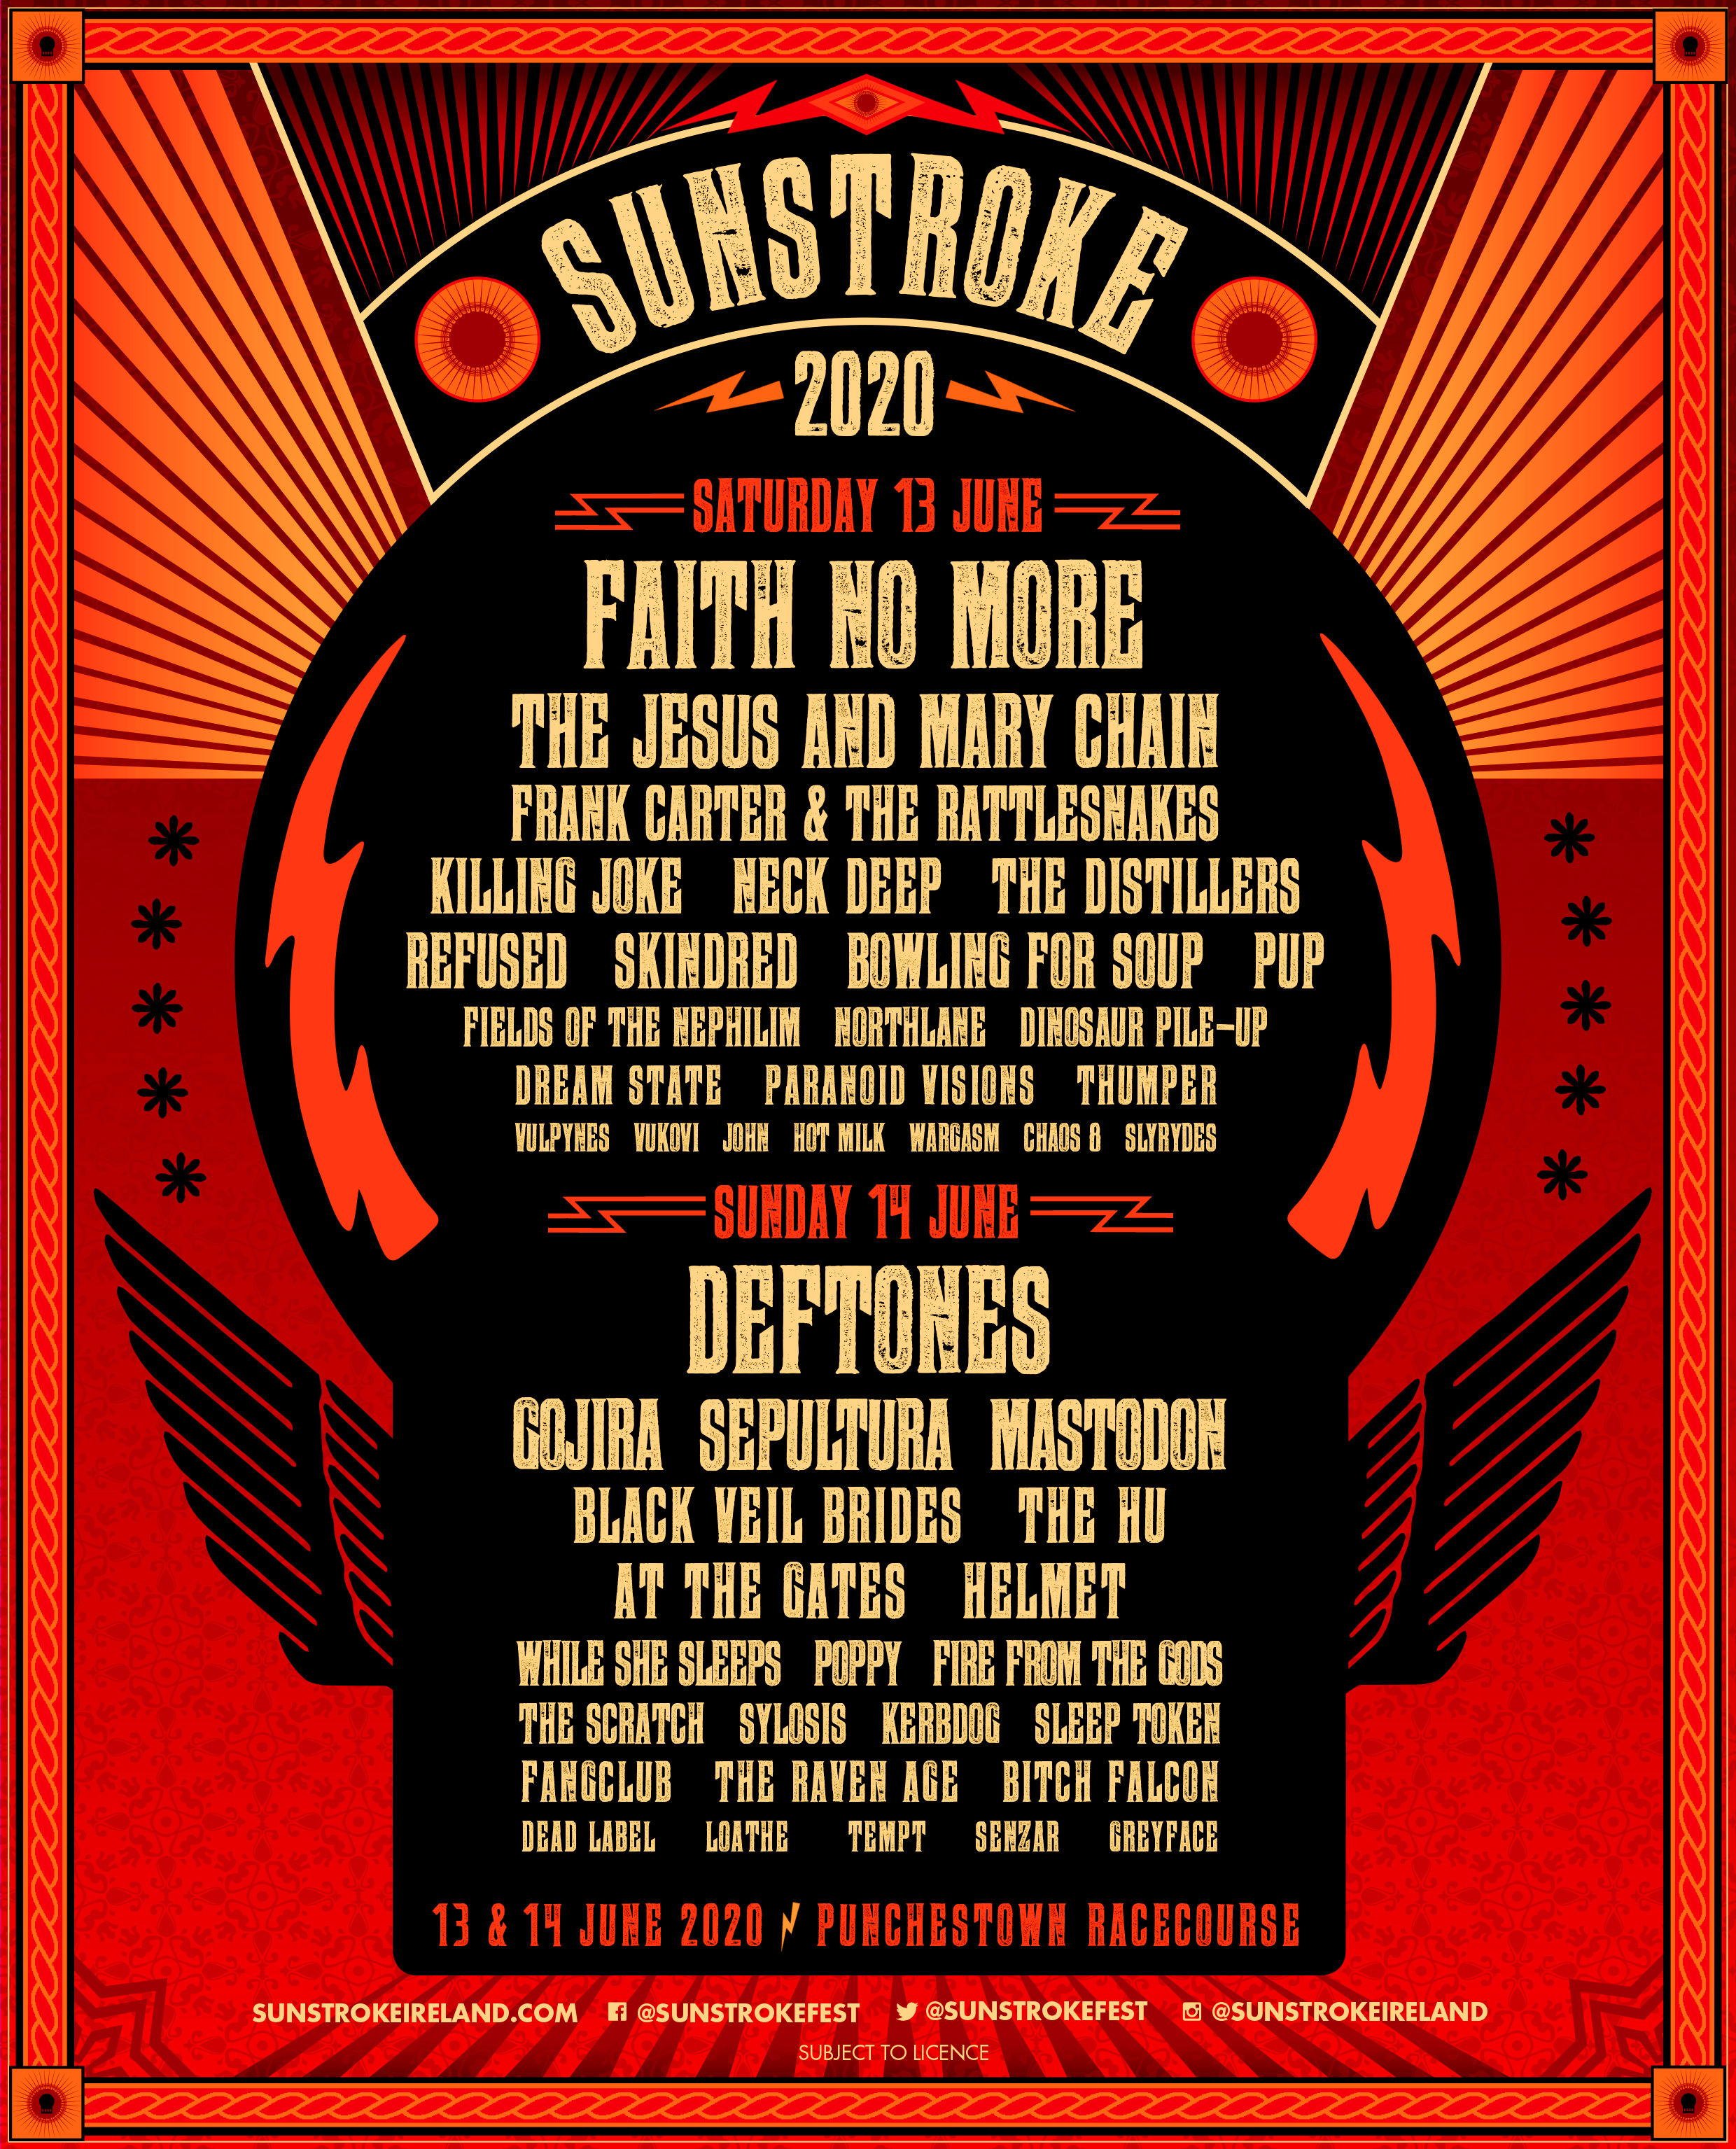 Sunstroke 2020 adds Mastodon, the Distillers, Kerbdog & more